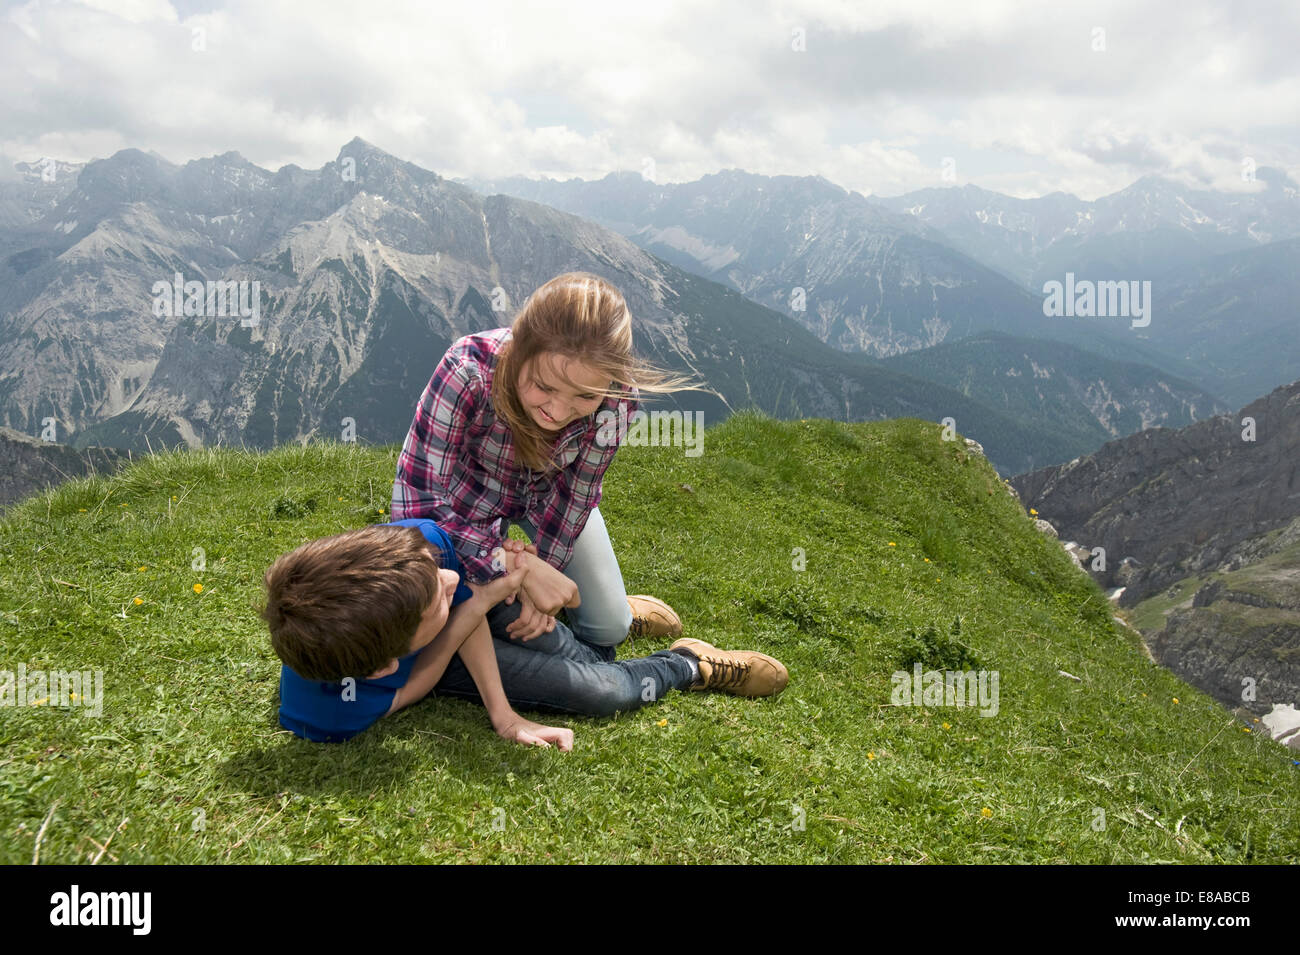 Young girl and boy playing wrestling on grass Alps Stock